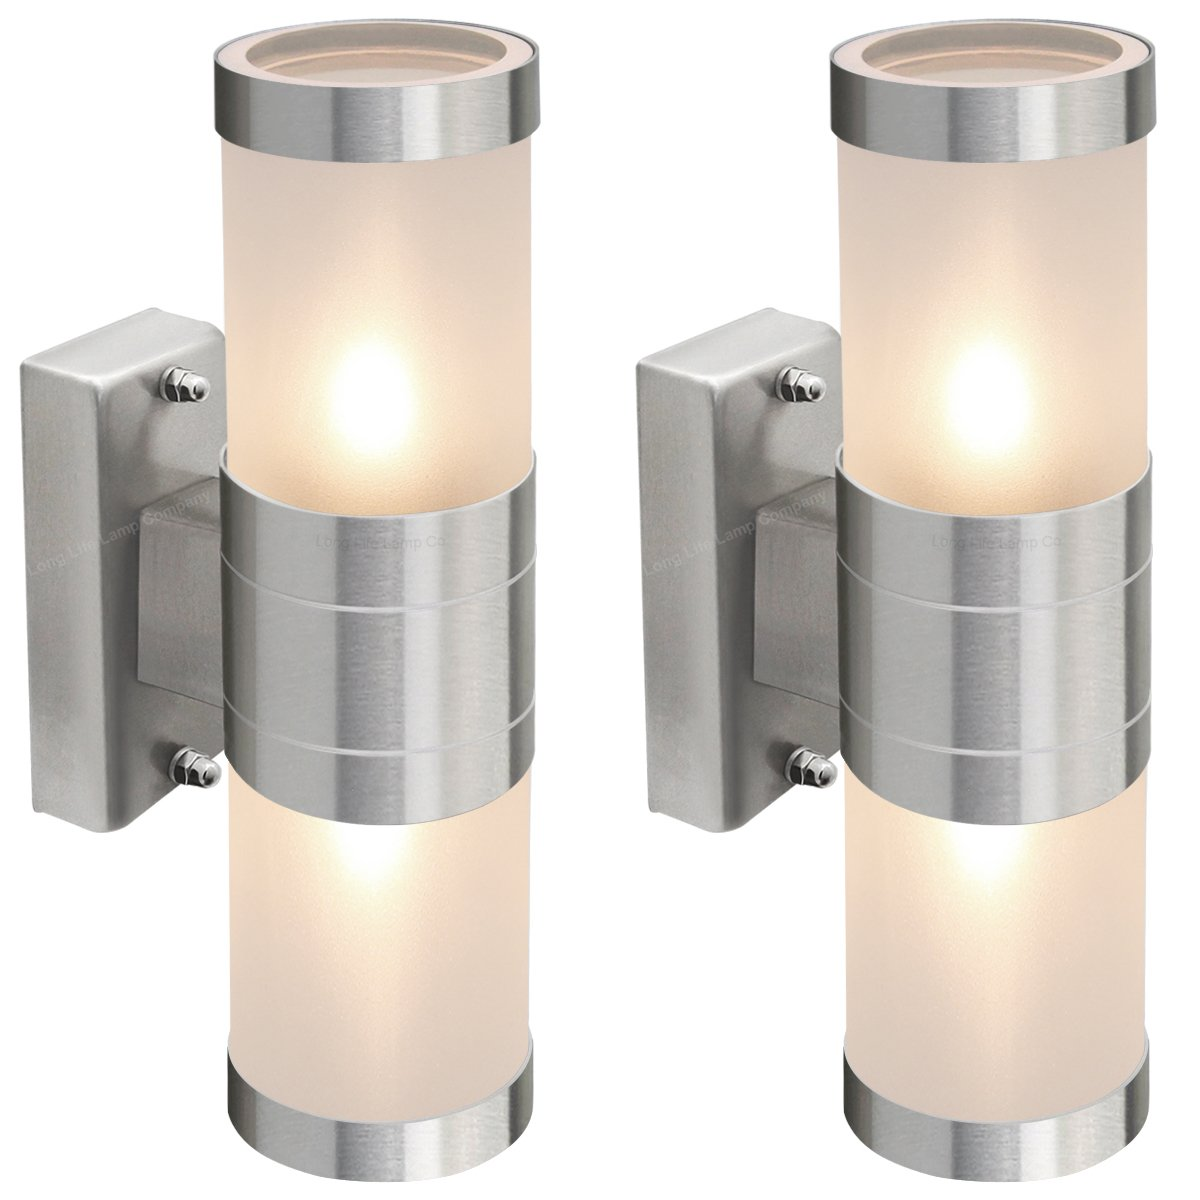 2 X Stainless Steel Up Down Wall Light Frosted Glass Cover IP44 Garden Wall Light ZLC017 Long Life Lamp Company. ZLC0172P